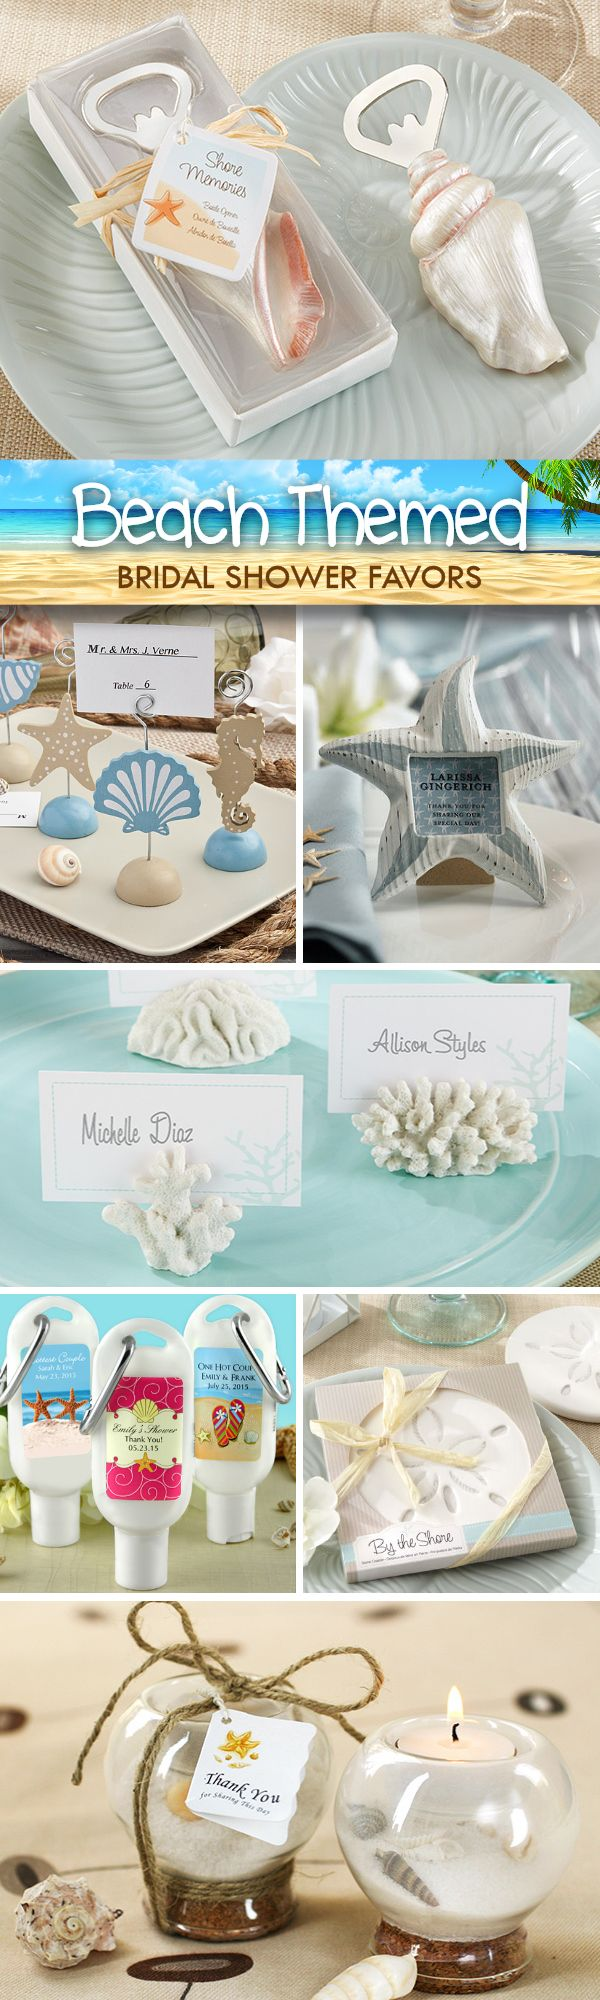 Looking for little thank you gifts your guests will love?  Check out these beach themed bridal shower favors that are sure to impress....